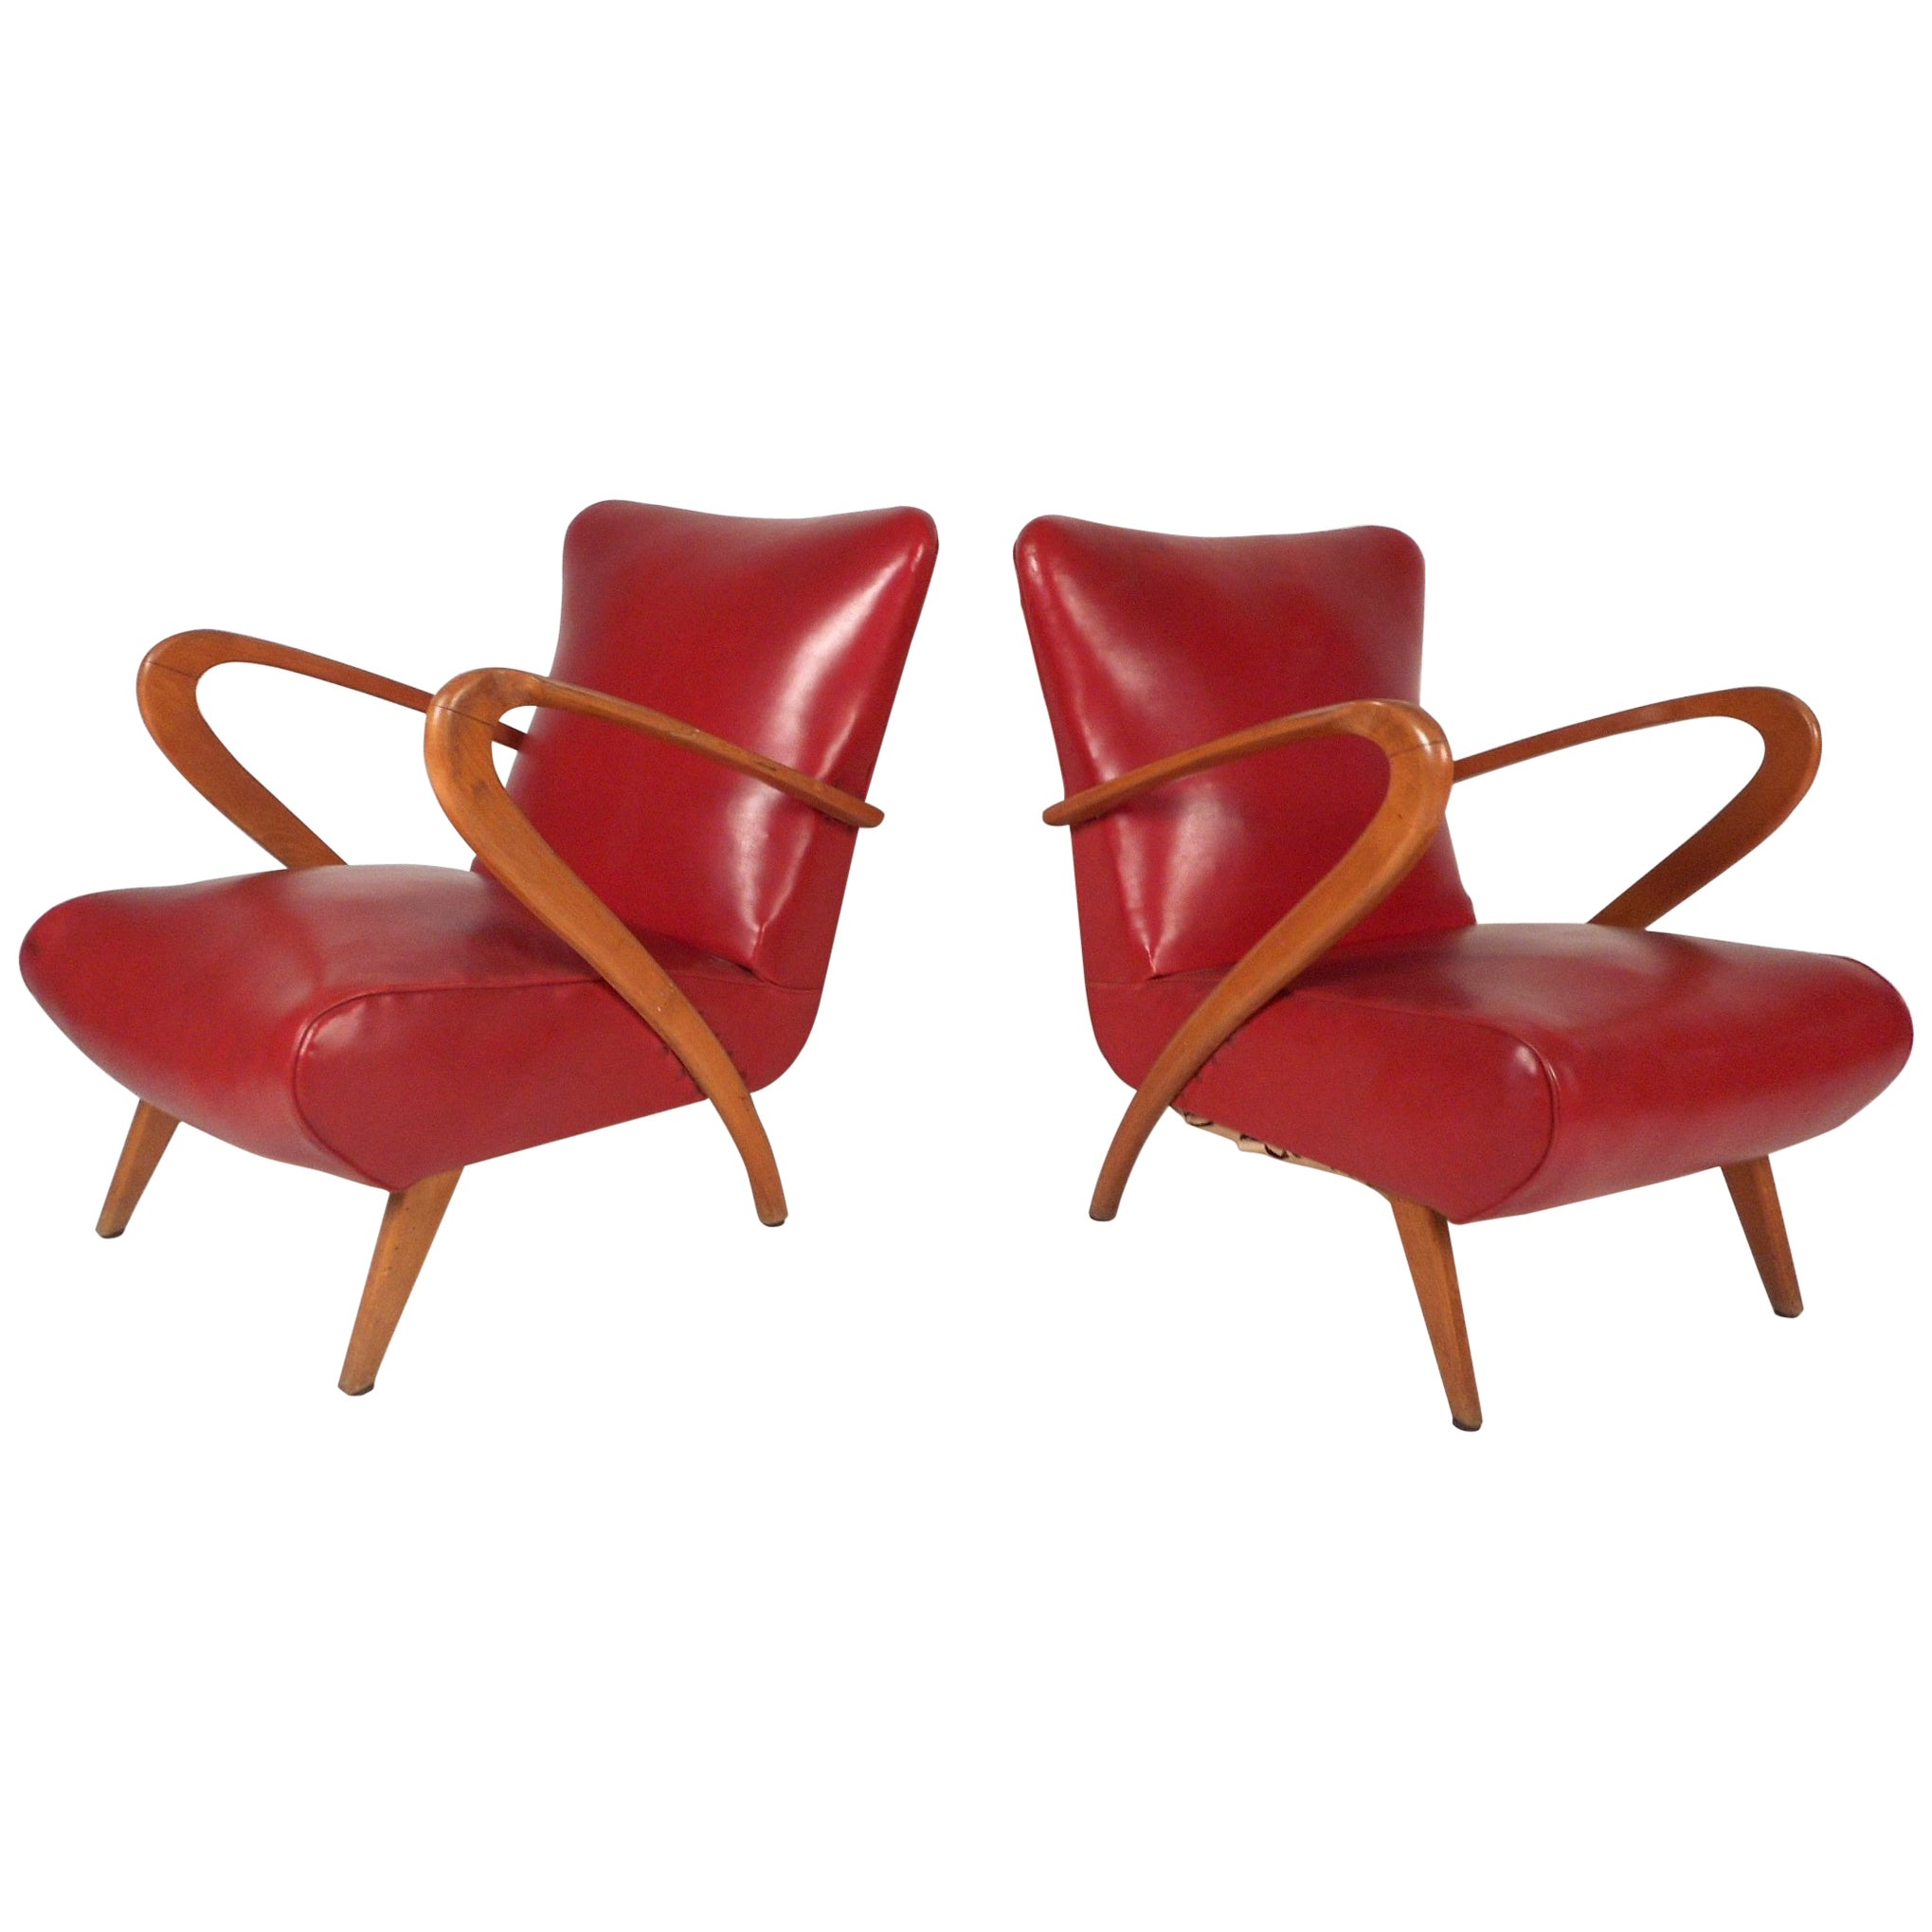 Pair of Mid-Century Modern Italian Lounge Chairs by Paolo Buffa